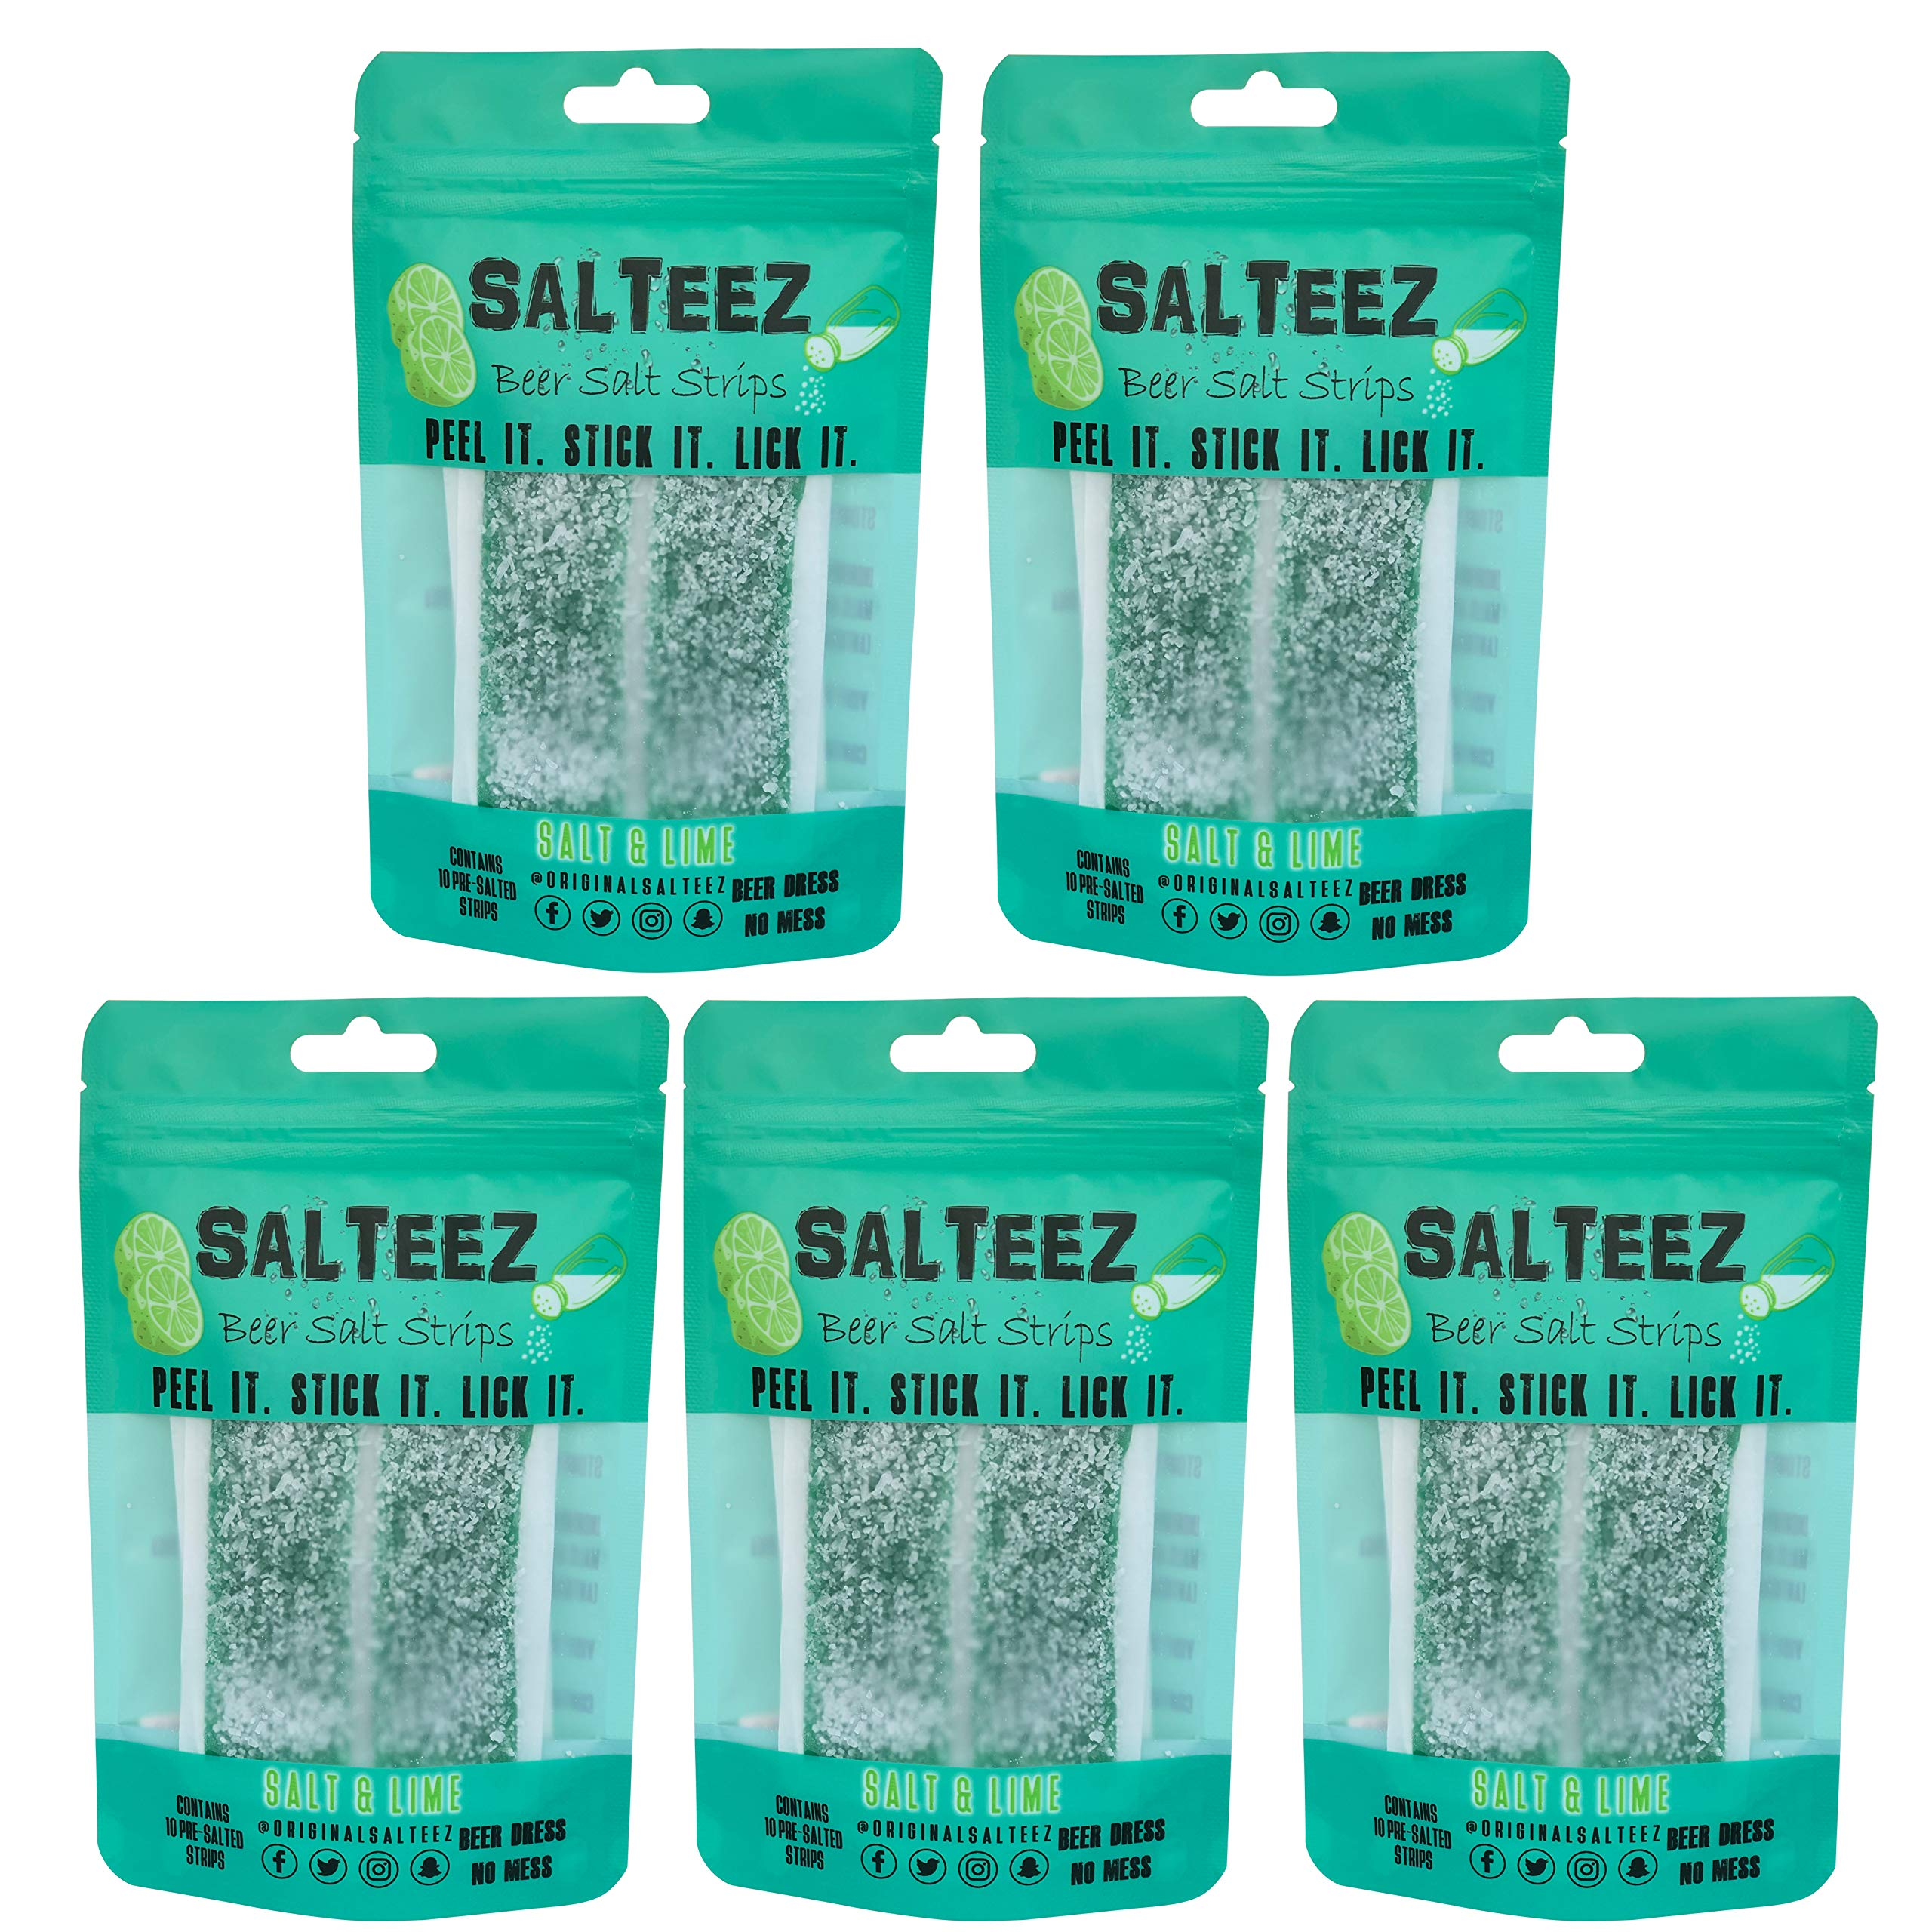 Salteez Beer Salt Strips: Real Salt and Lime Flavor Strips That Stick to Your Bottle, Can, or Cup - 5 Packs (50 Strips Total) - For a Perfectly Dressed Beer Anytime Anywhere!